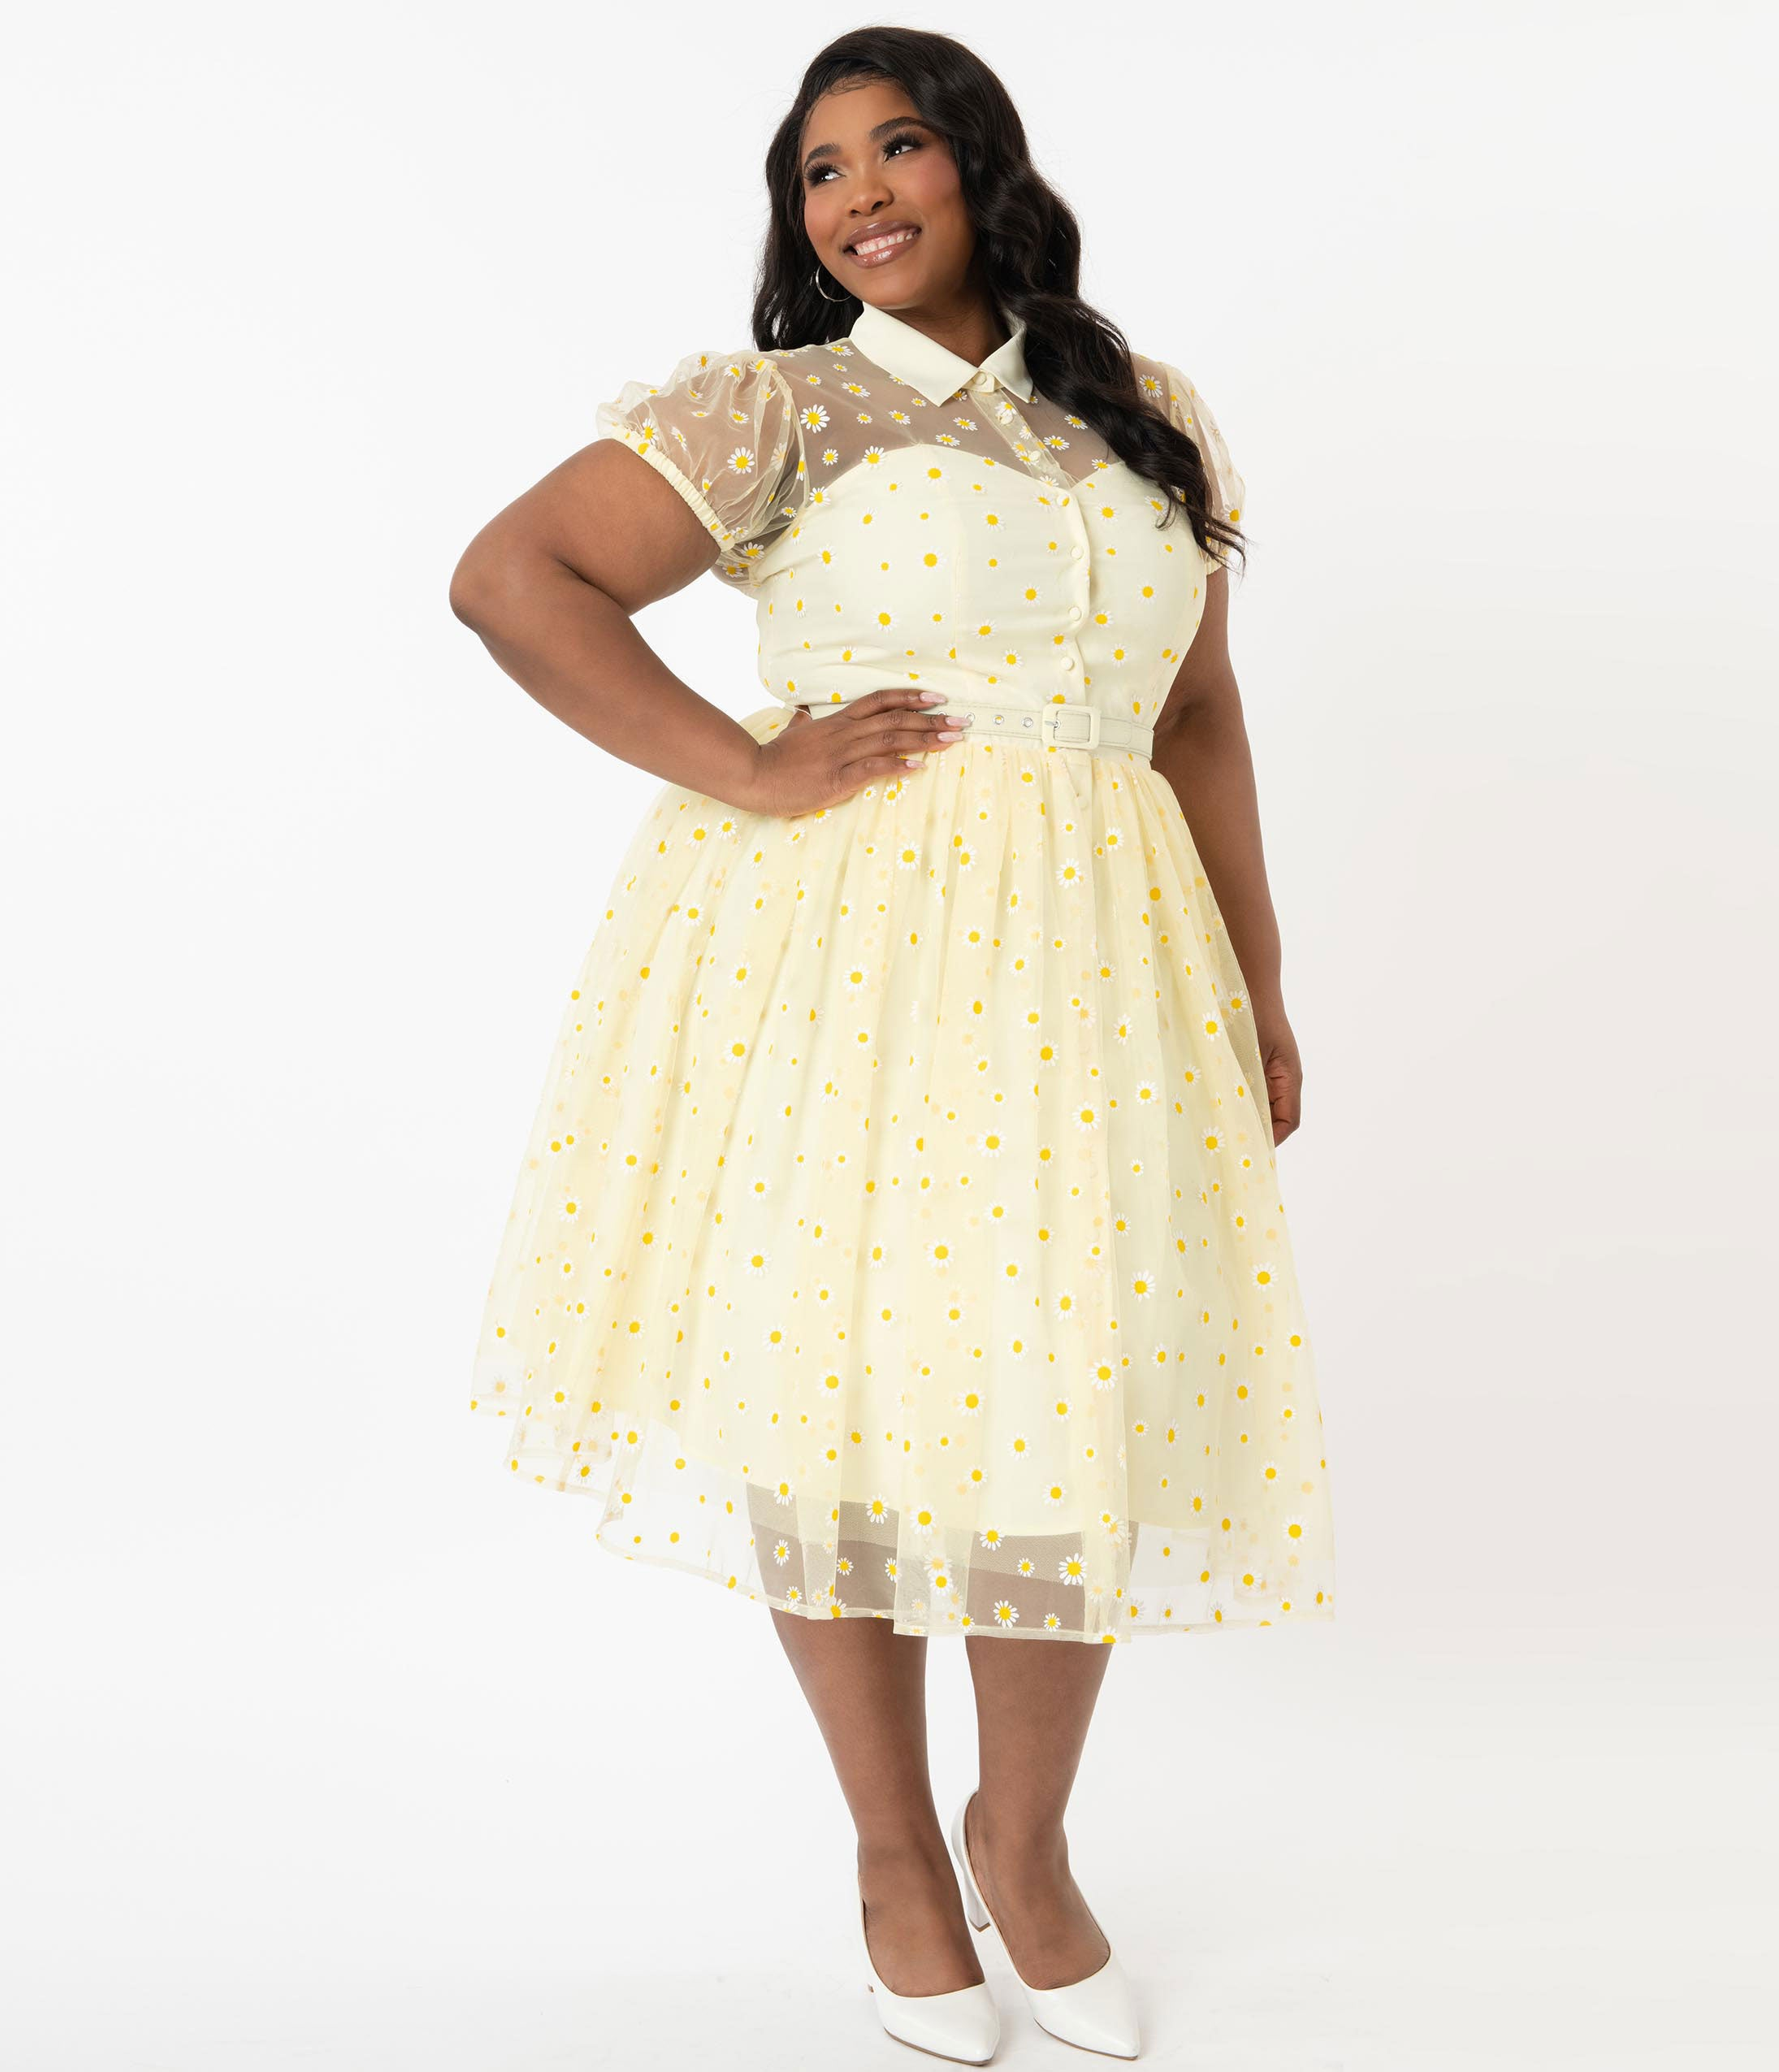 What Did Women Wear in the 1950s? 1950s Fashion Guide Unique Vintage Plus Size Yellow  White Daisy Print Hollie Swing Dress $78.00 AT vintagedancer.com